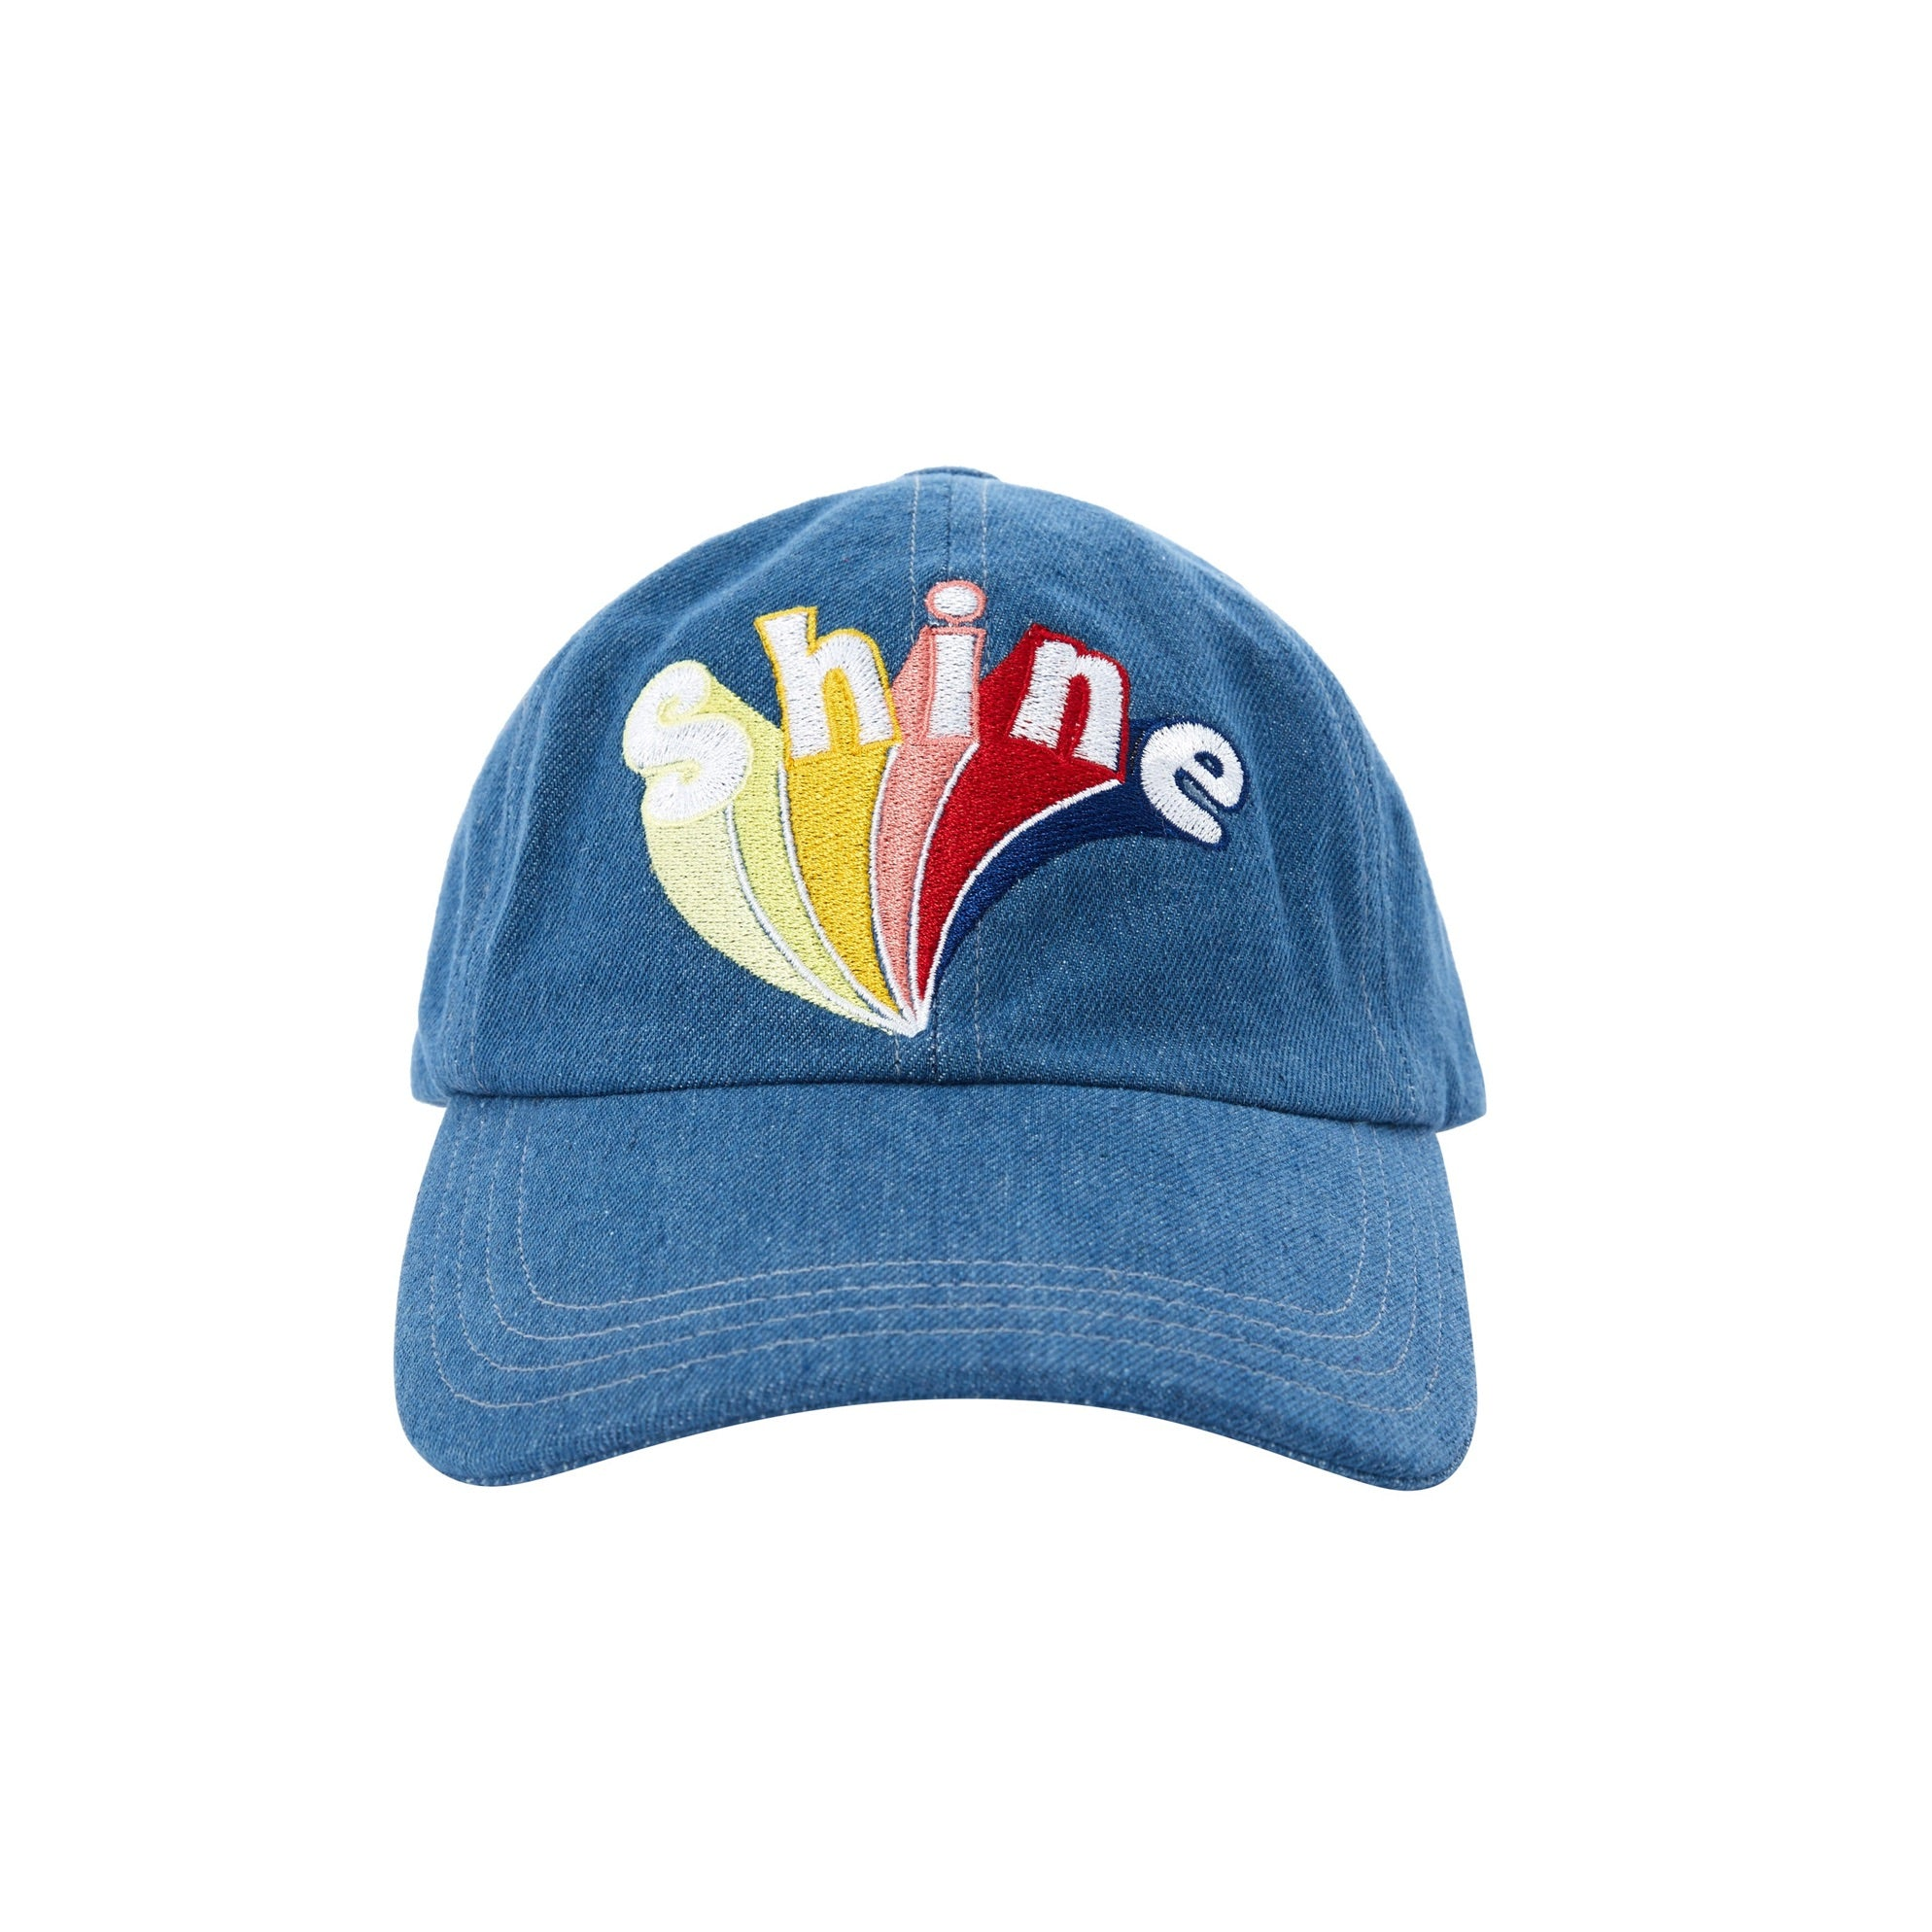 Rainbow Shine Cap